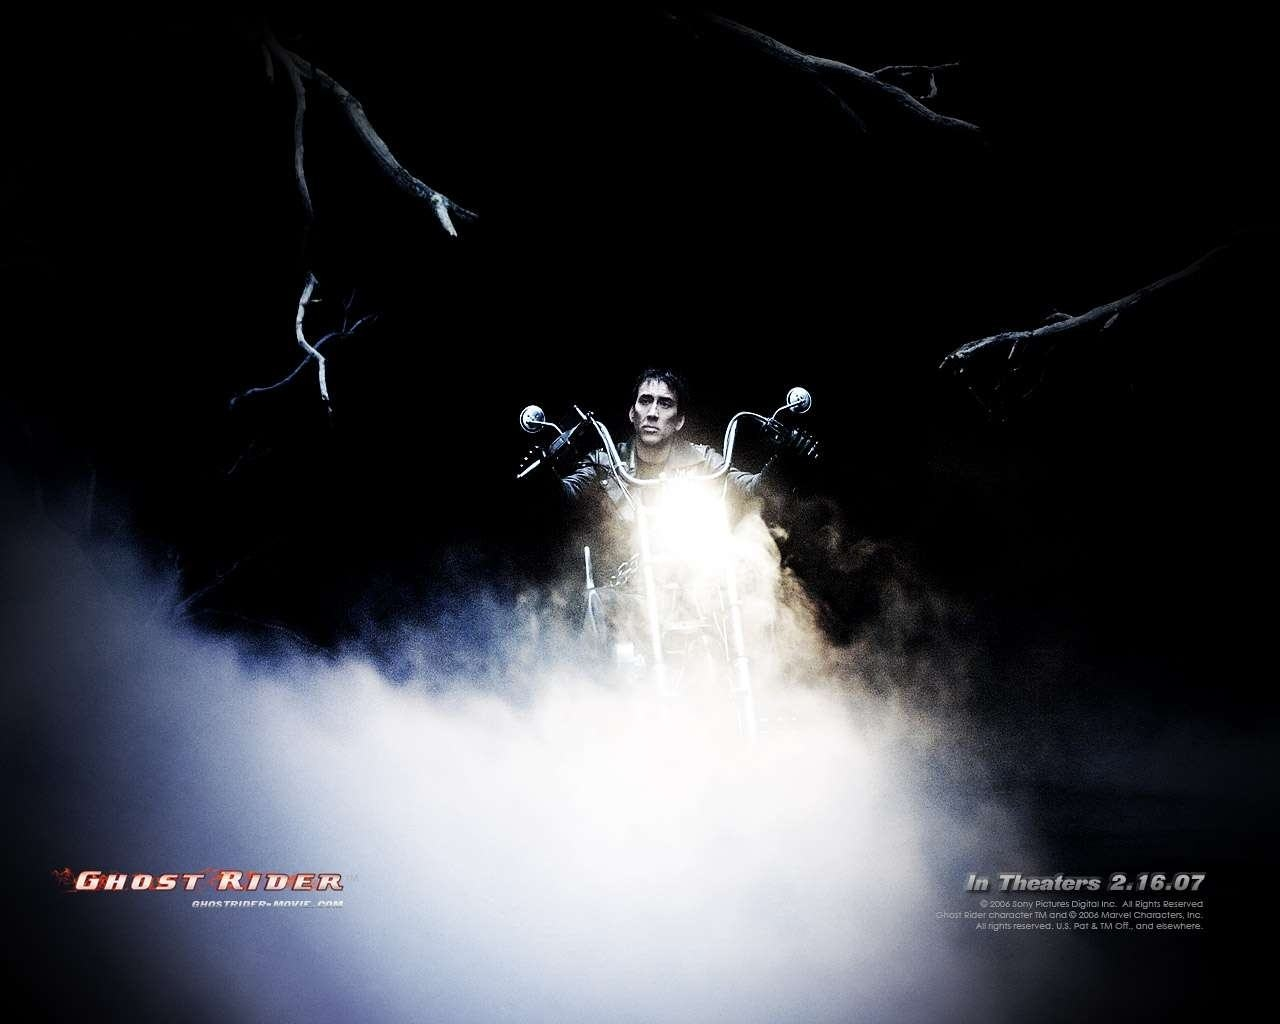 Ghost Screensaver HD Wallpapers Backgrounds Rider   host2postc 1280x1024